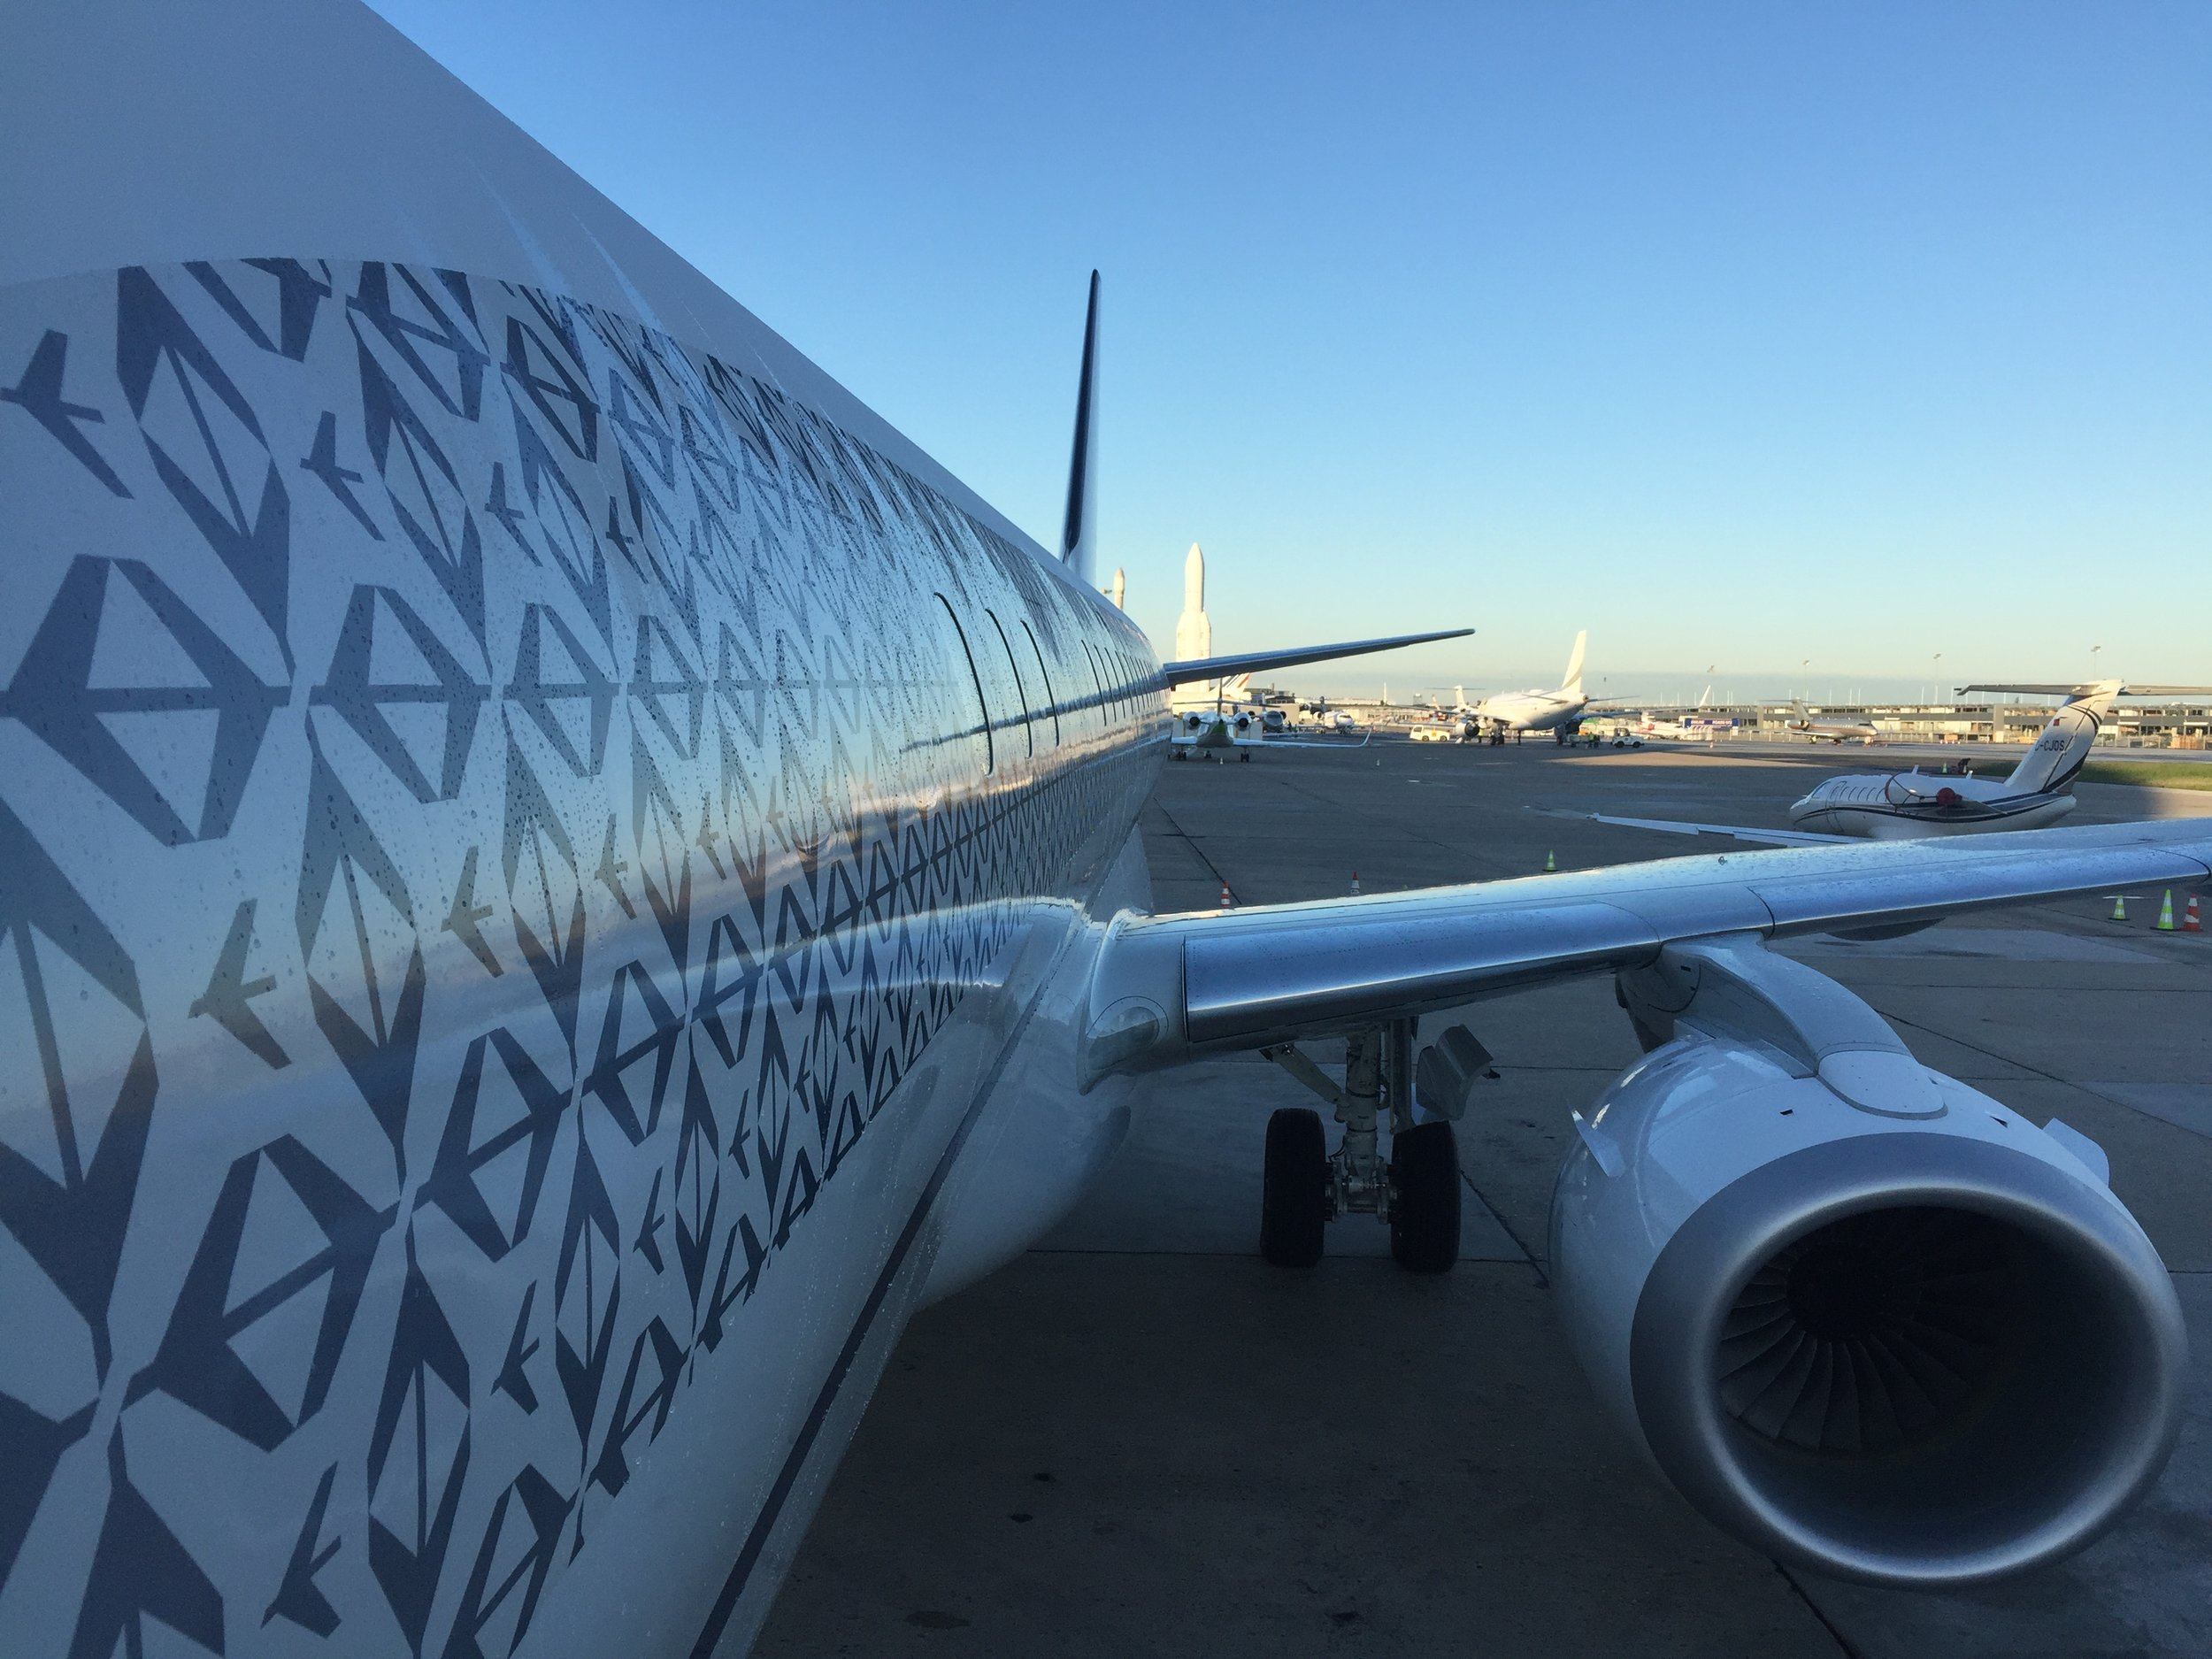 When taking a closer look it appears that the aircraft's livery is actually made of many repetitions of the Embraer logo, creating a pattern